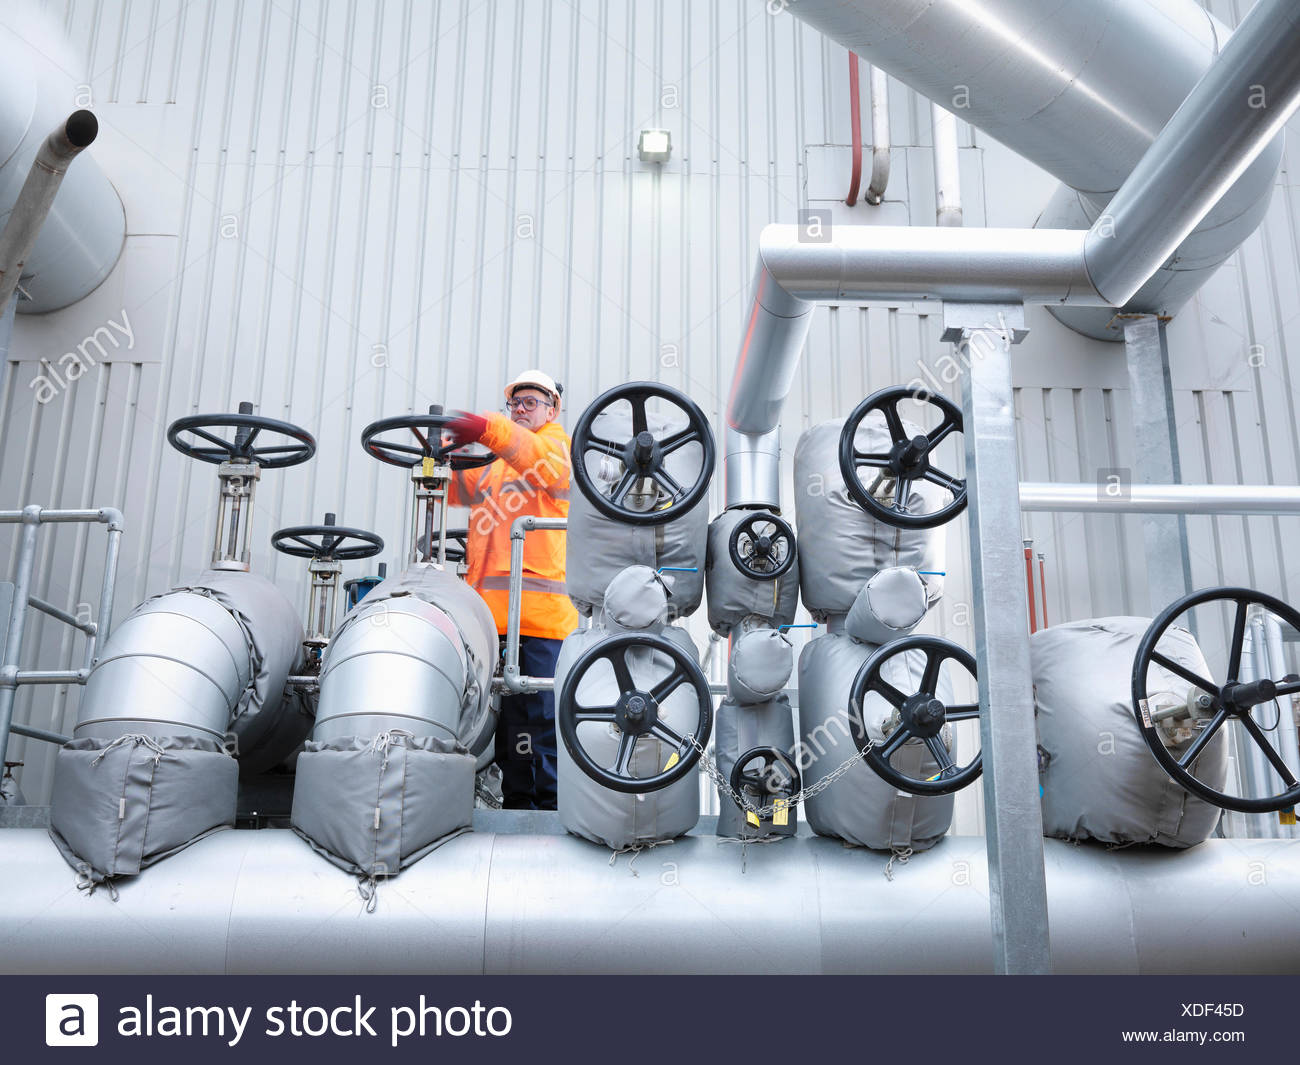 Worker turning valve of gas fired power station - Stock Image